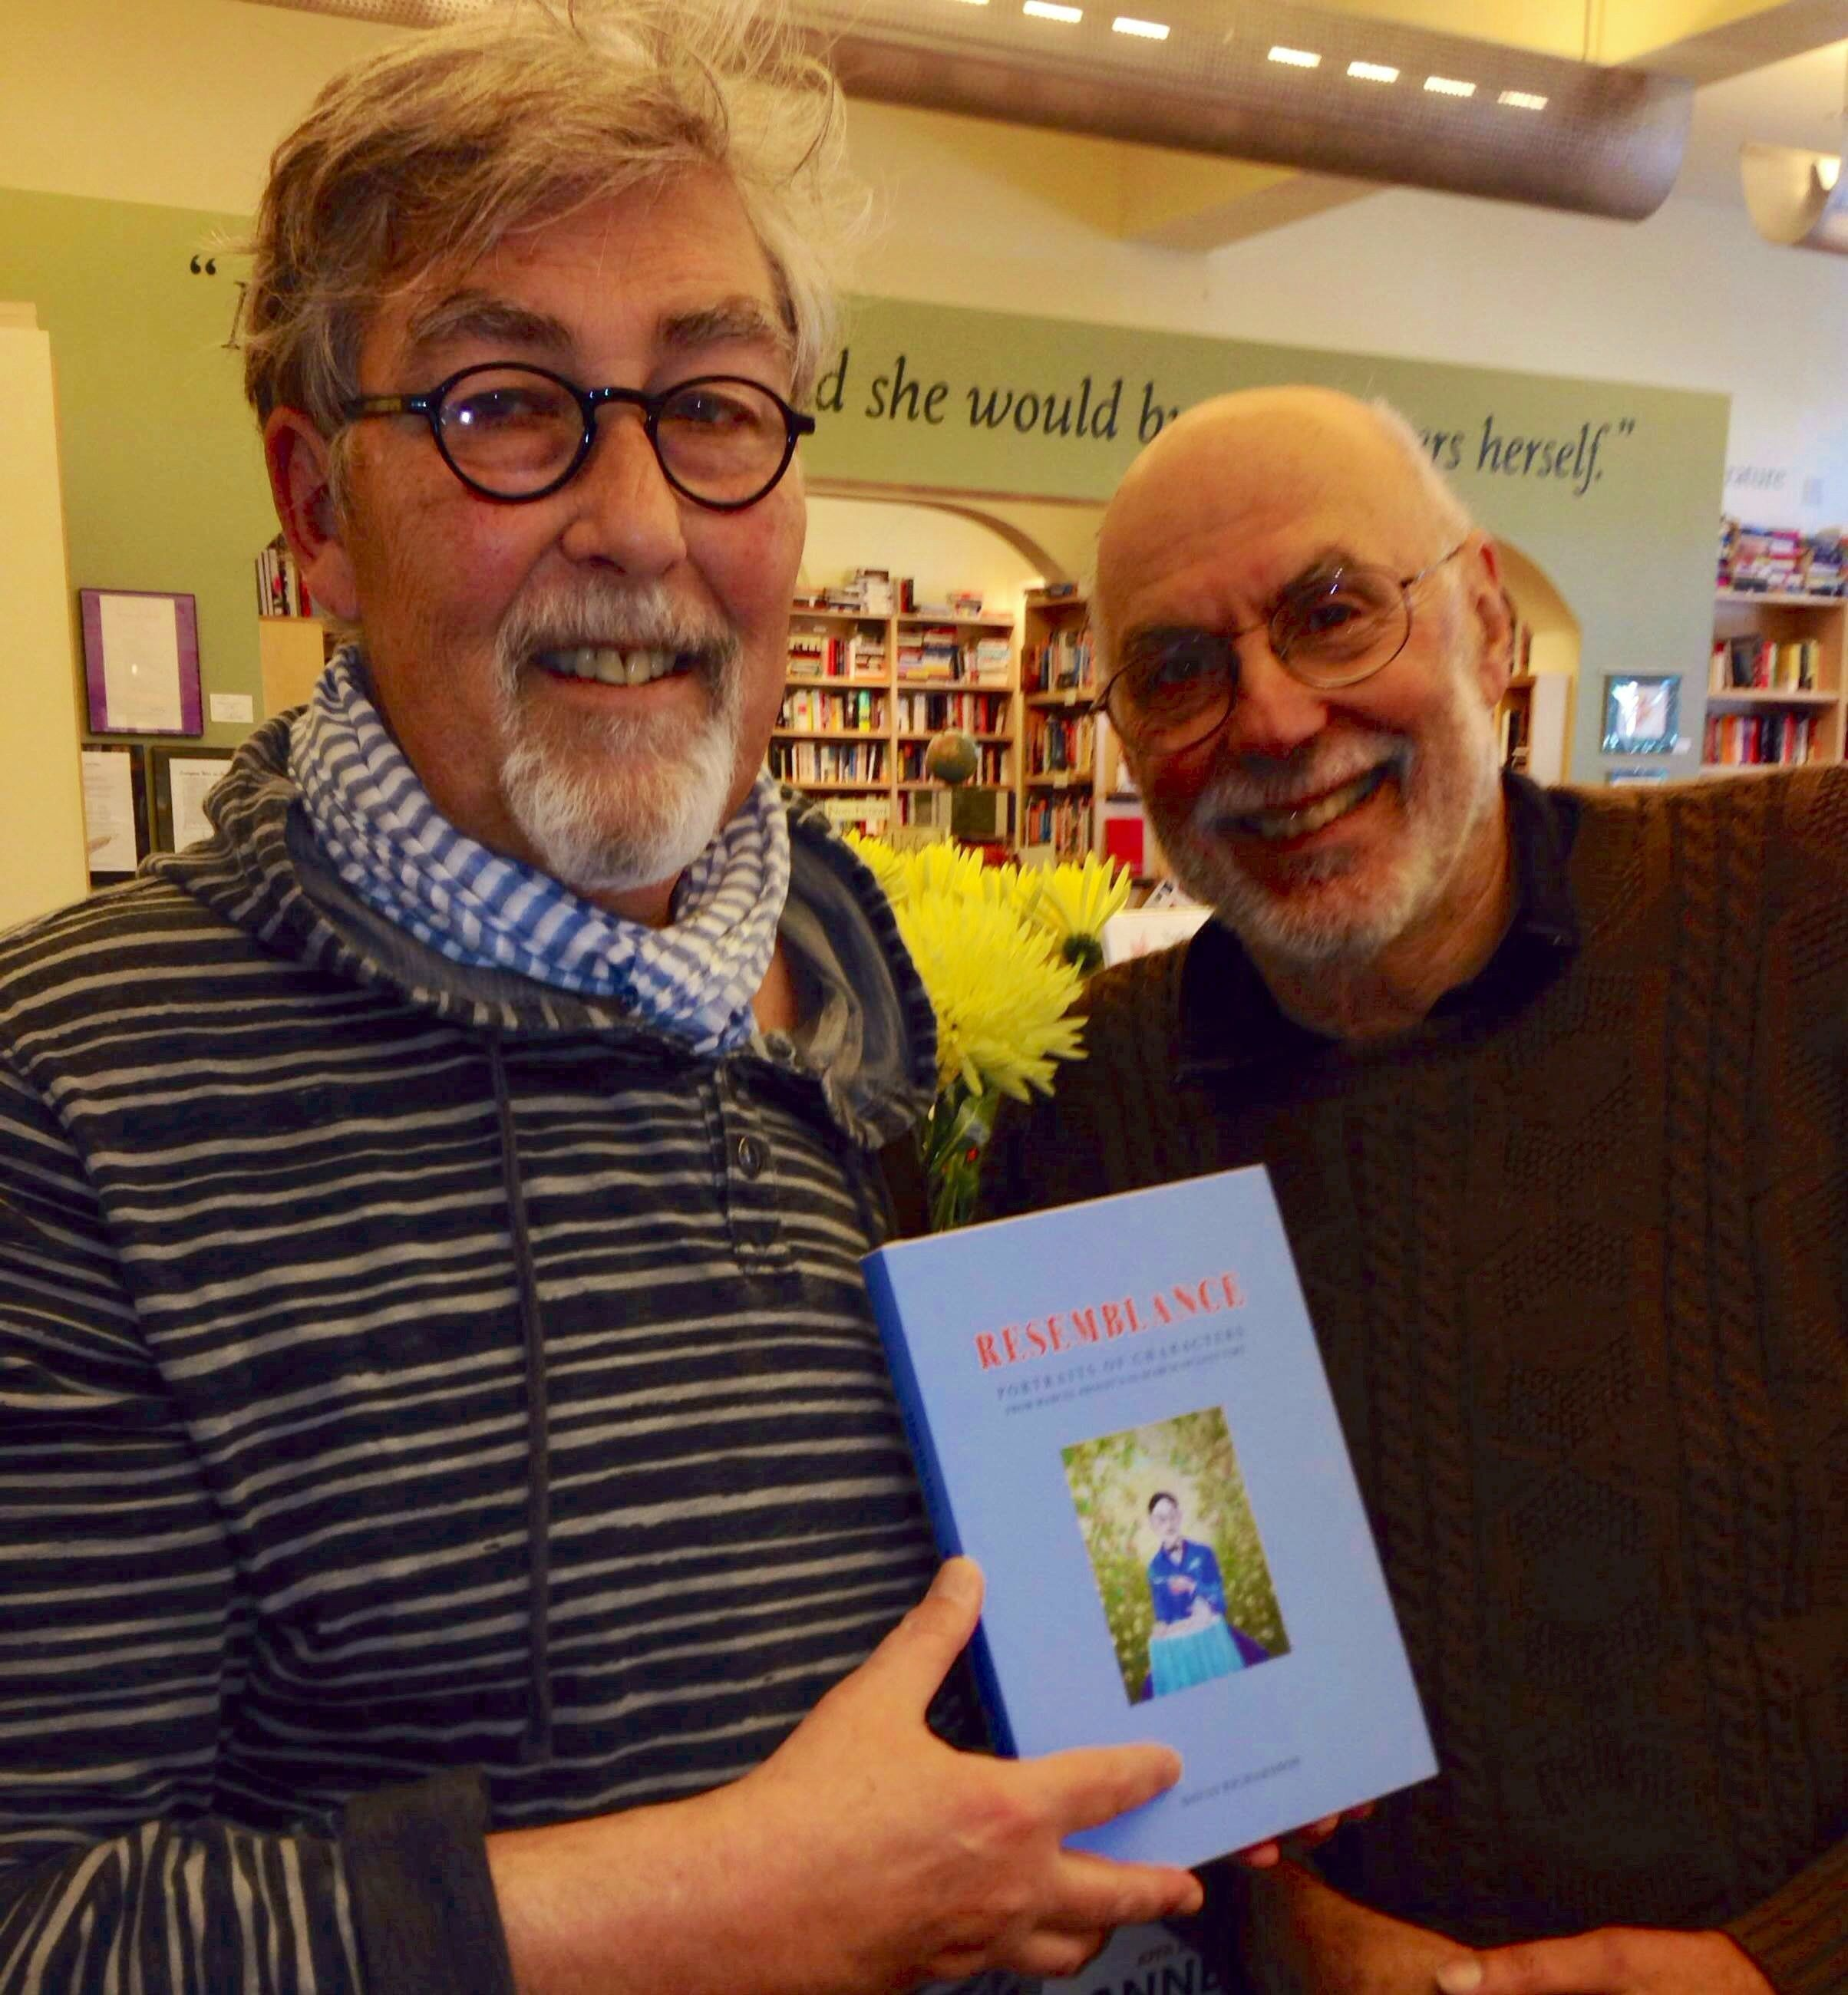 """David Richardson, holding his book of Proust portraits """"Resemblance,"""" (http://www.davidwesleyrichardson.com and http://resemblancetheportraits.blogspot.com/2013/09/resemblance-book.html) with Larry Bensky of Radio Proust. (www.radioproust.com) Mrs. Dalloway's Bookstore, Berkeley."""